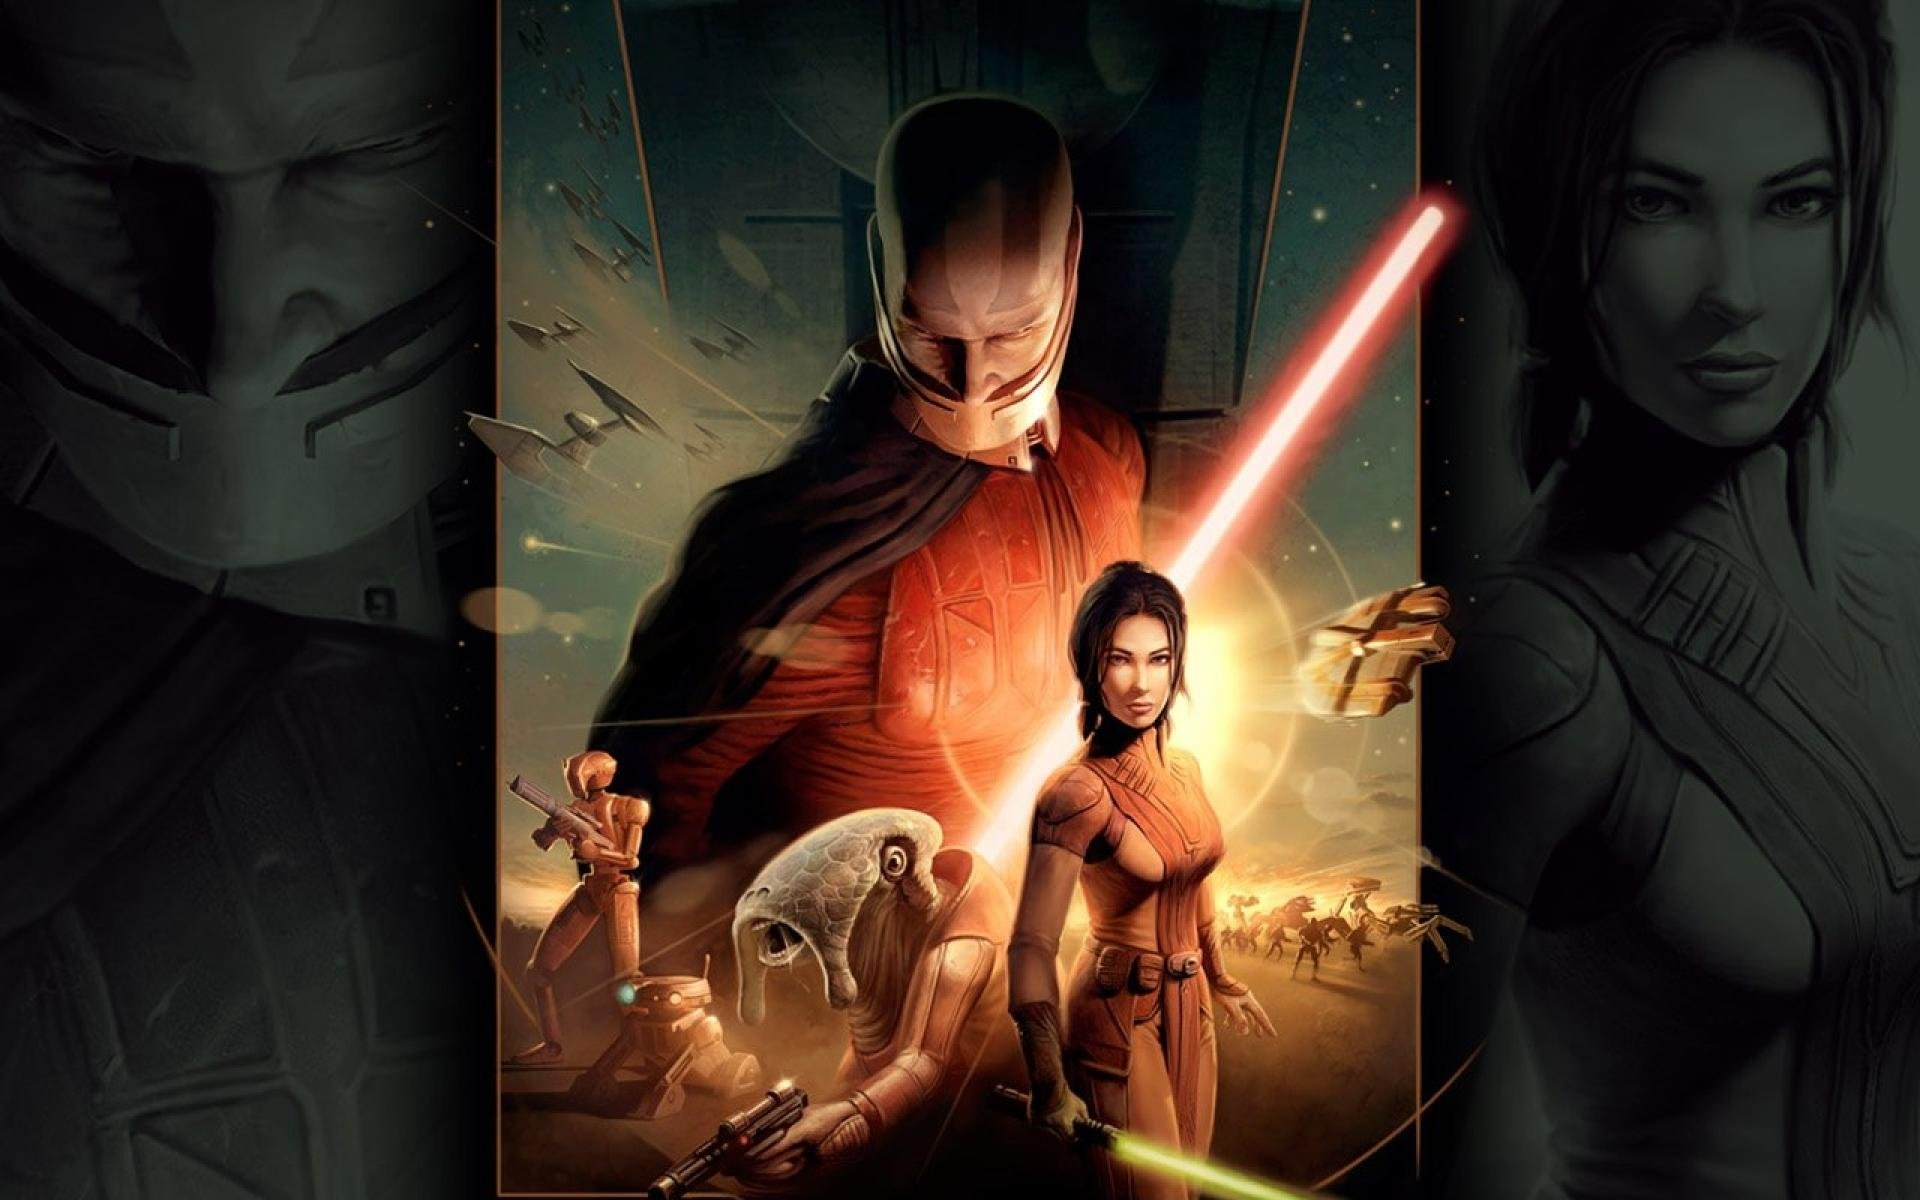 10 Top Star Wars Knights Of The Old Republic Wallpapers FULL HD 1920×1080 For PC Desktop